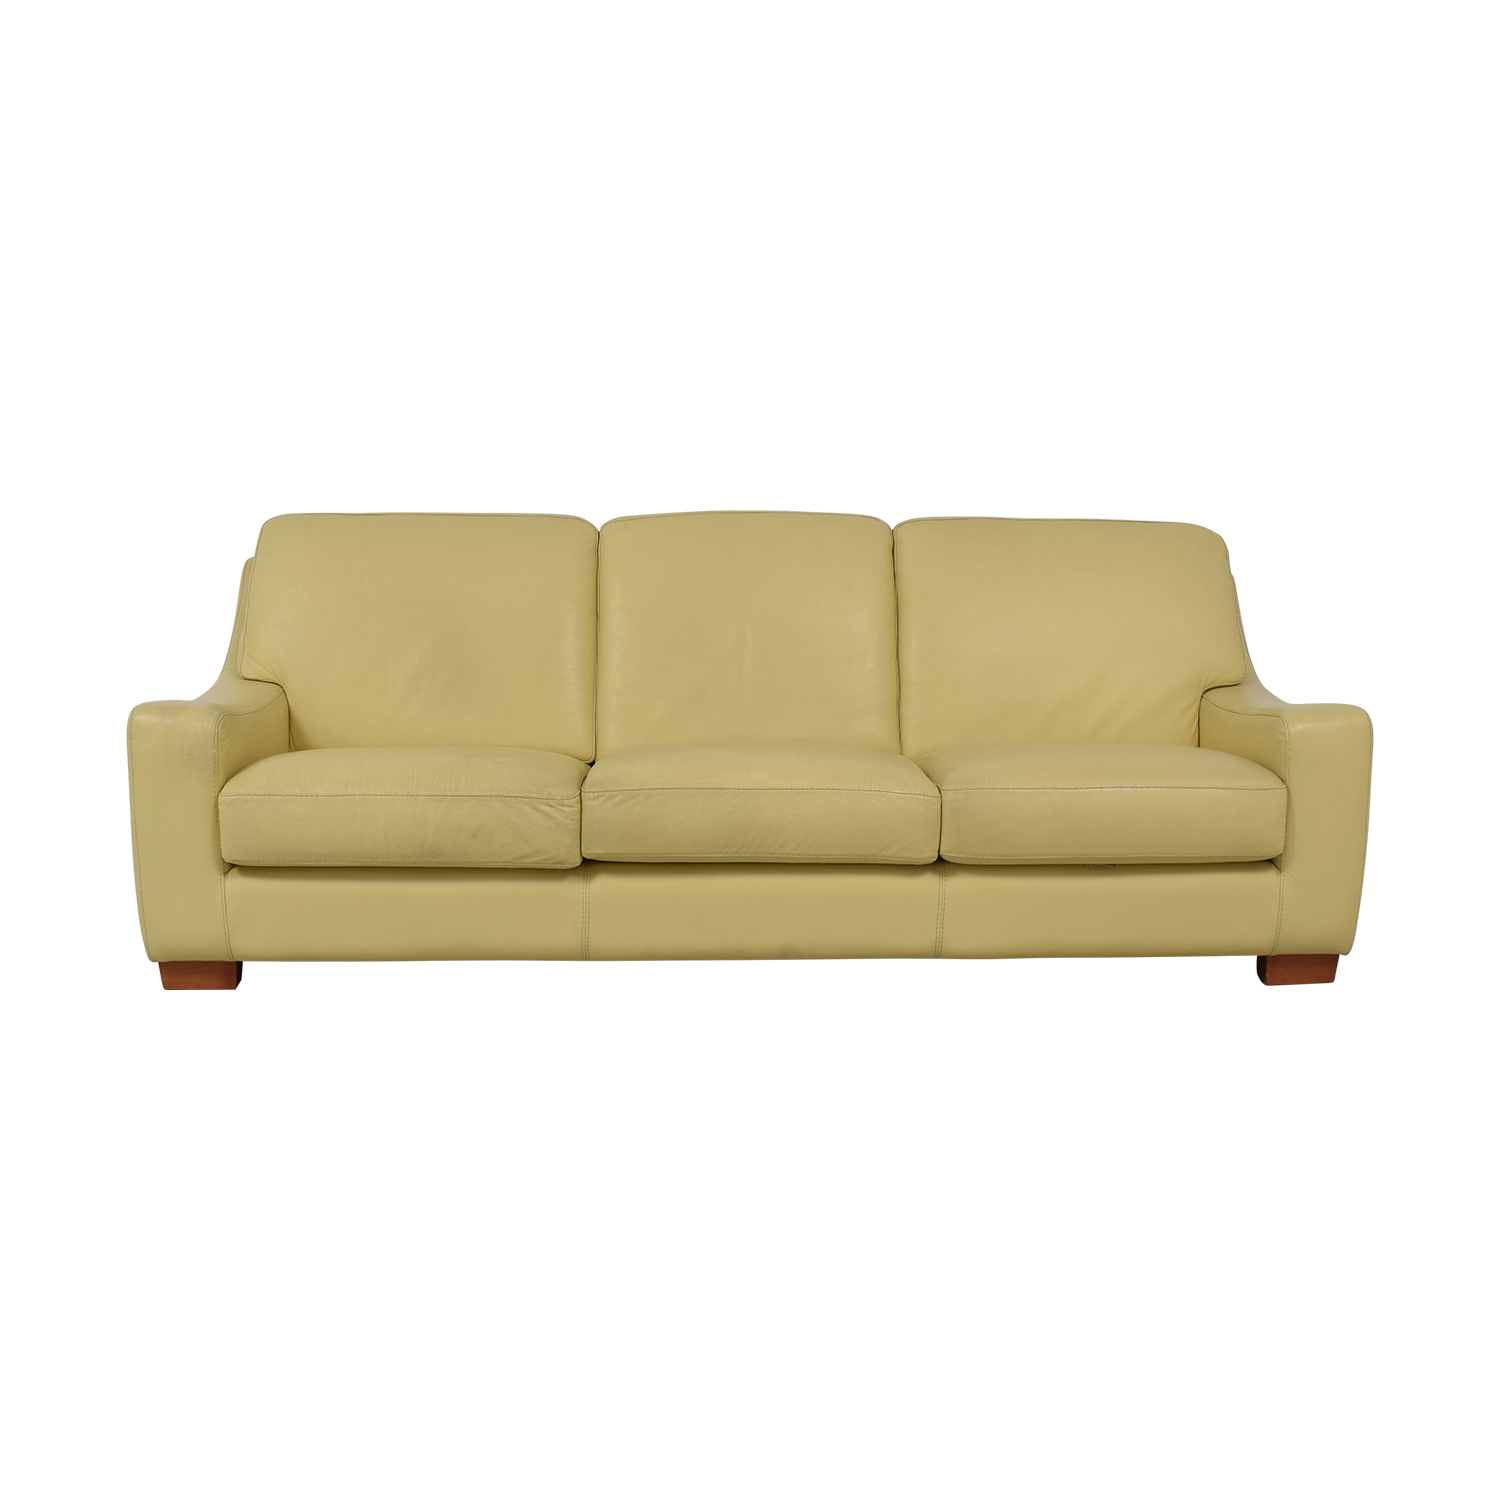 Mid Century Leather Sofa.84 Off Roche Bobois Mid Century Modern Roche Bobois Leather Sofa Sofas